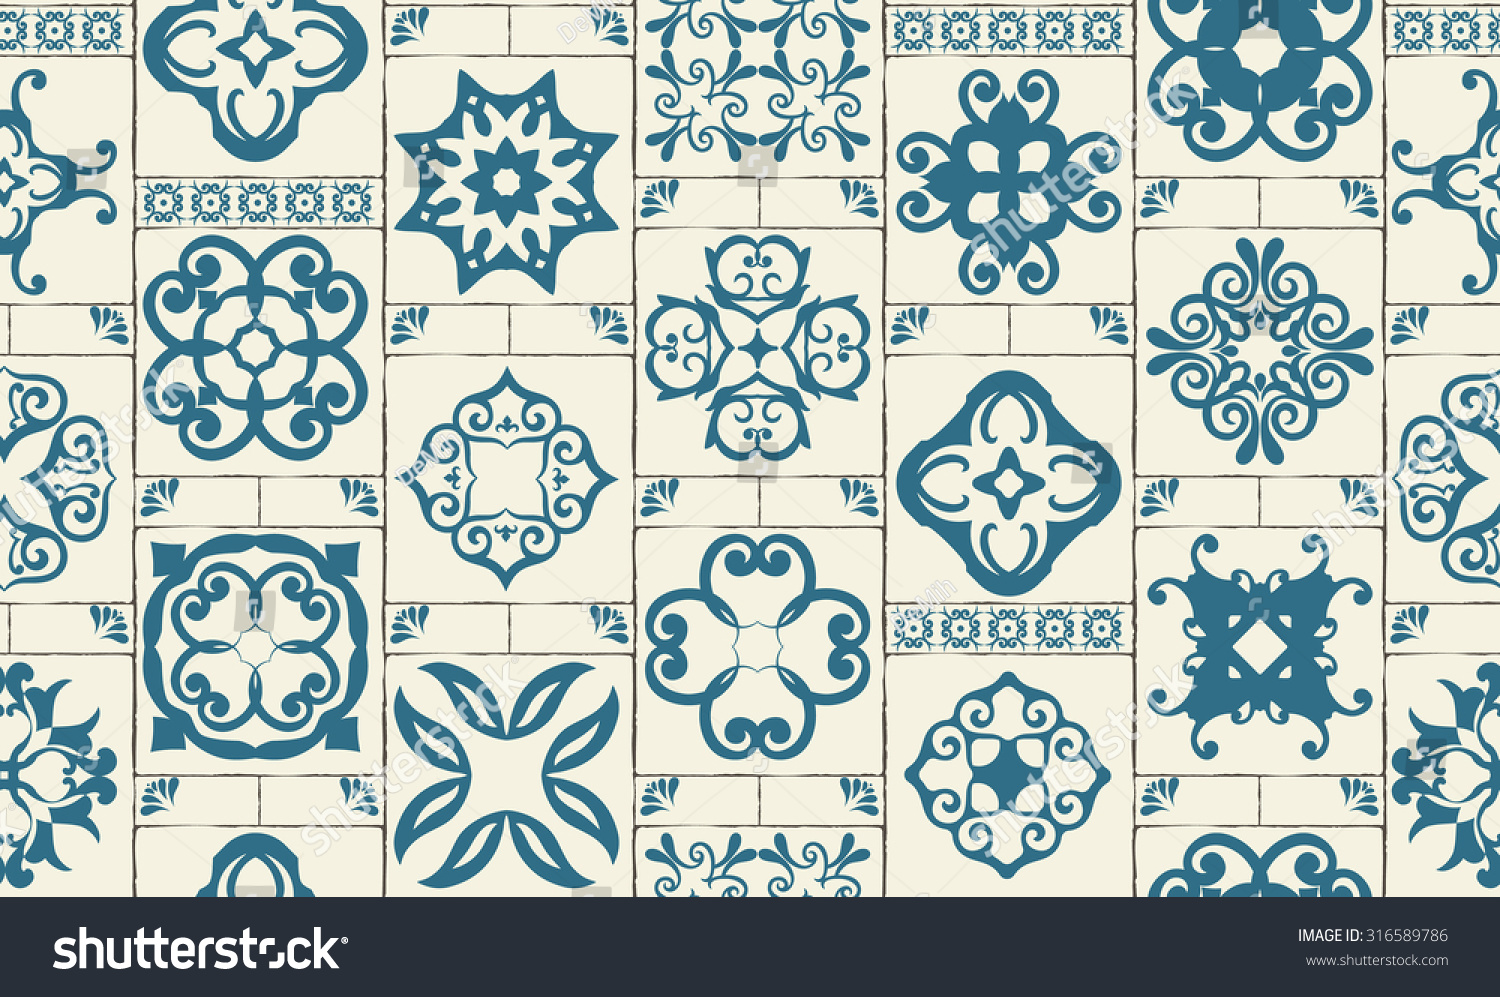 Moroccan Style Kitchen Tiles Classic Seamless Patchwork Pattern Moroccan Tiles Stock Vector